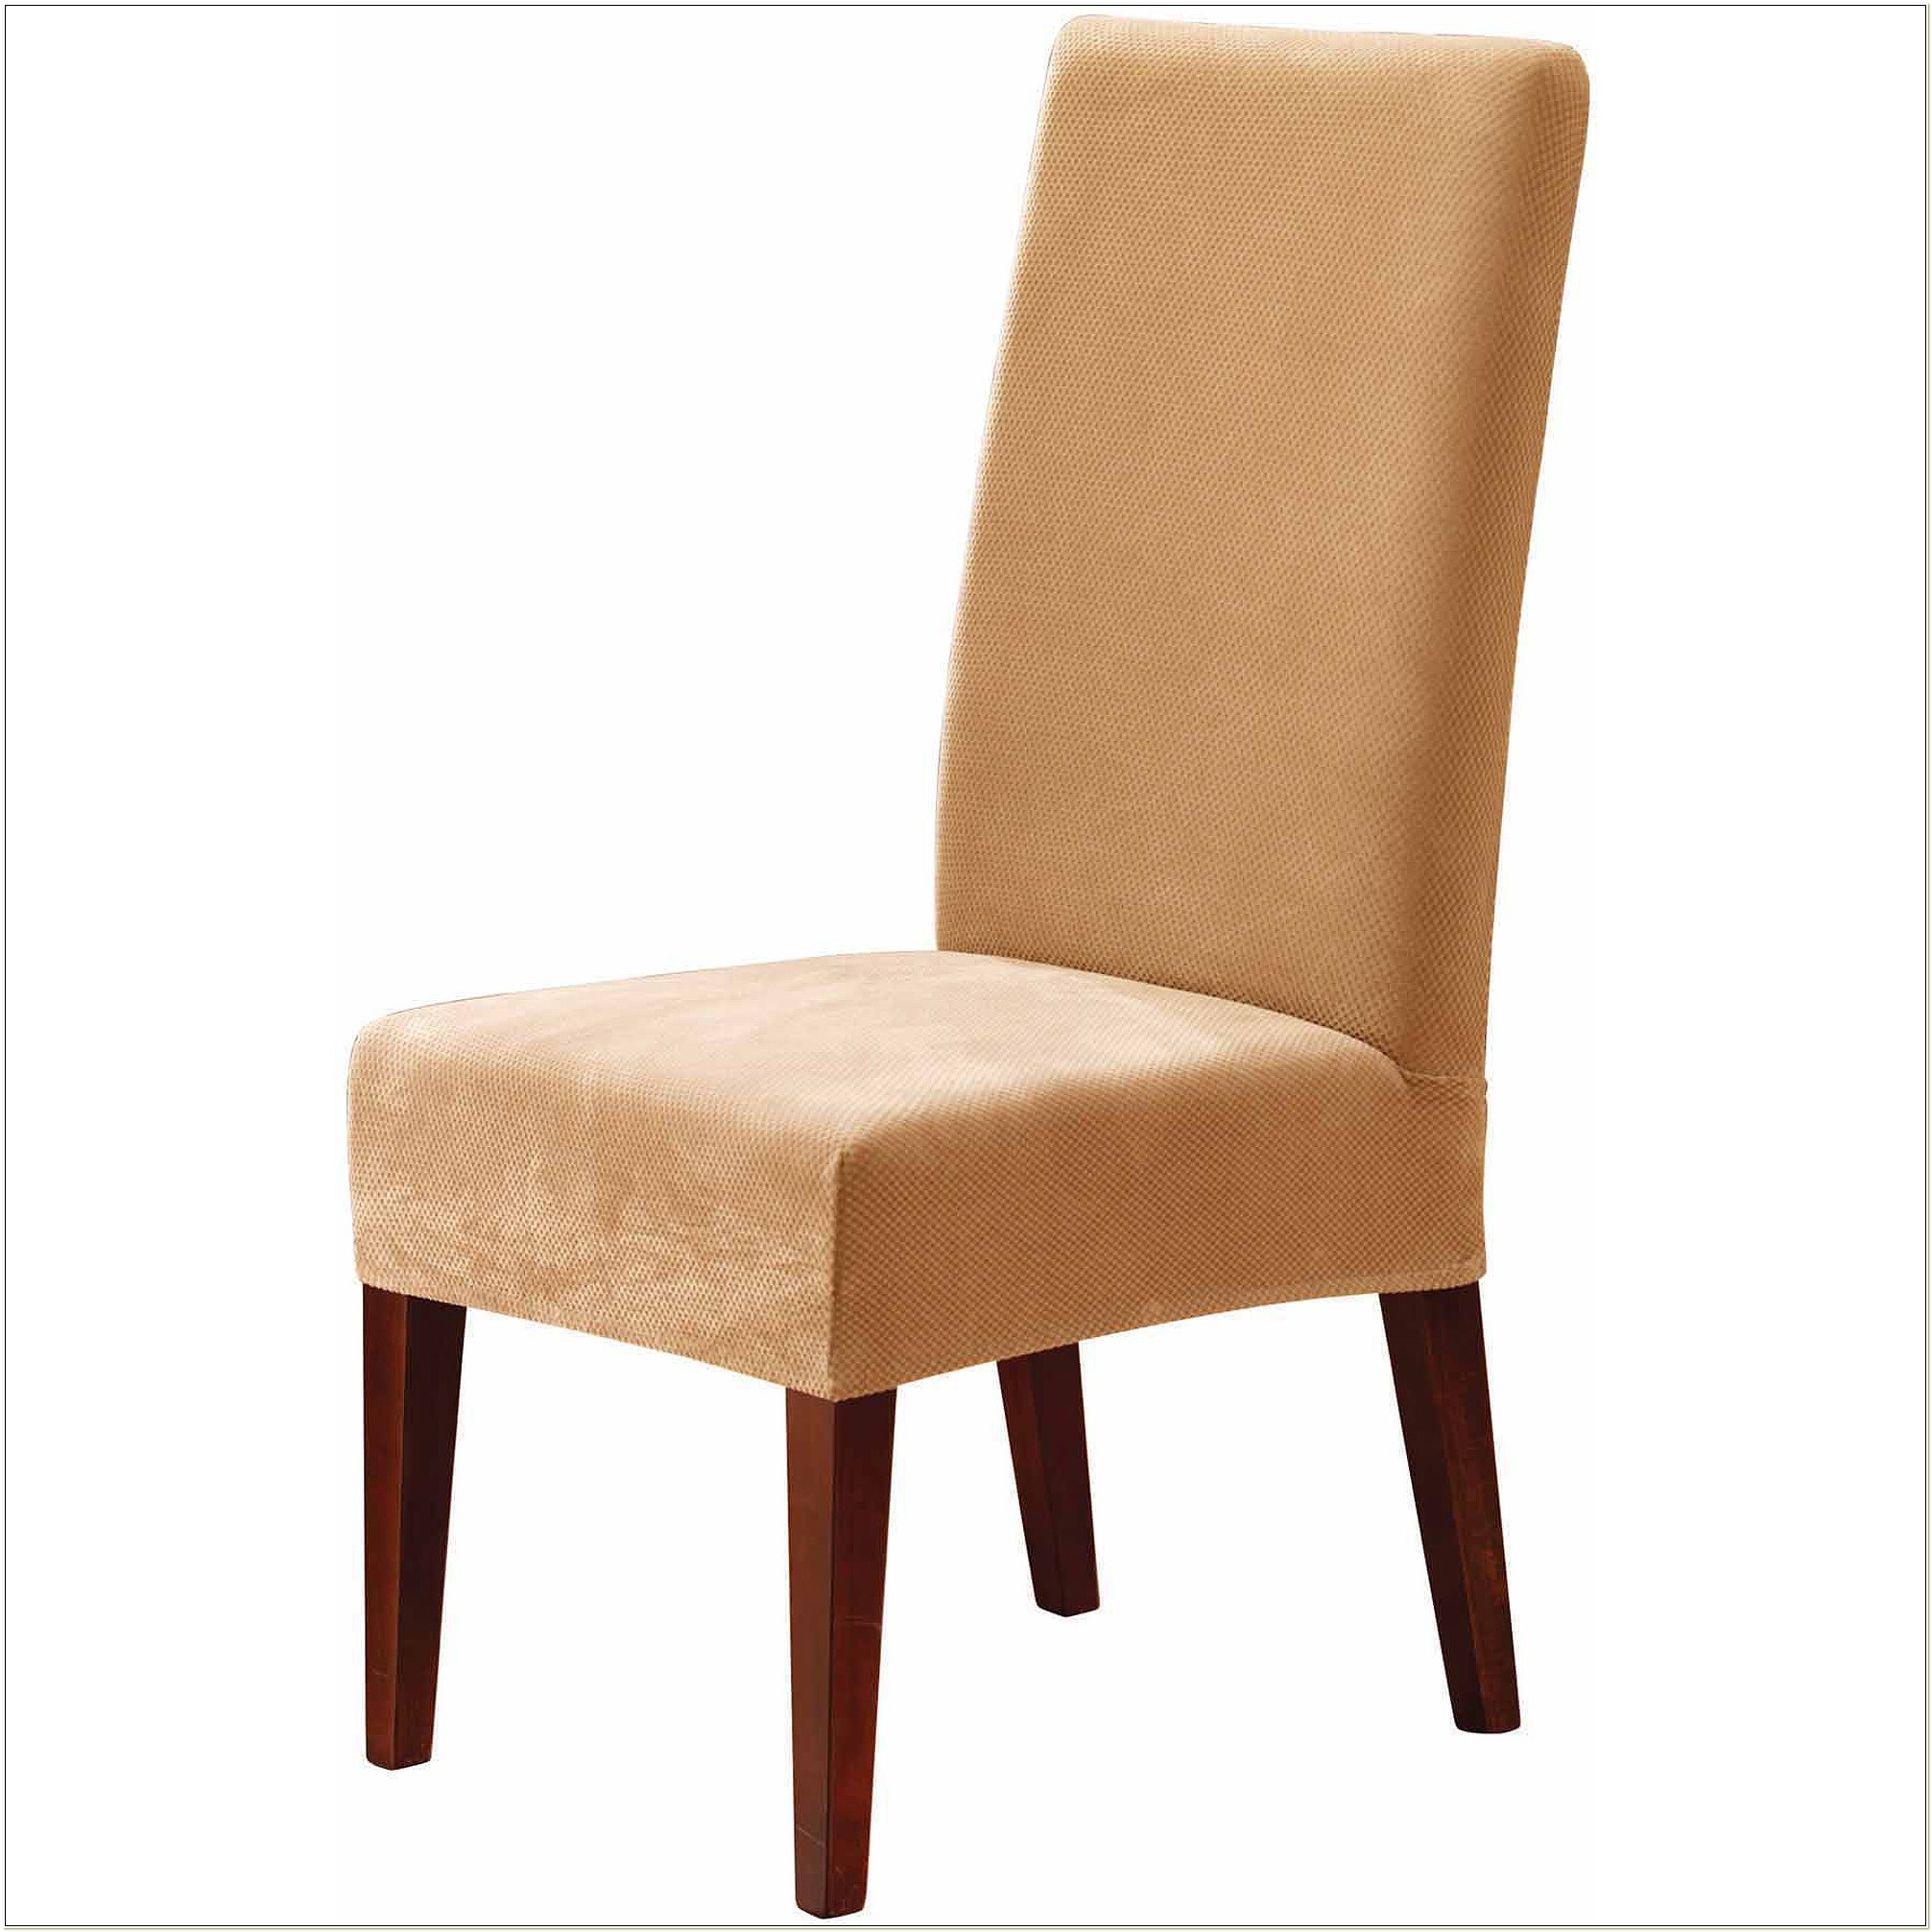 Dining Room Chair Seat Covers Walmart